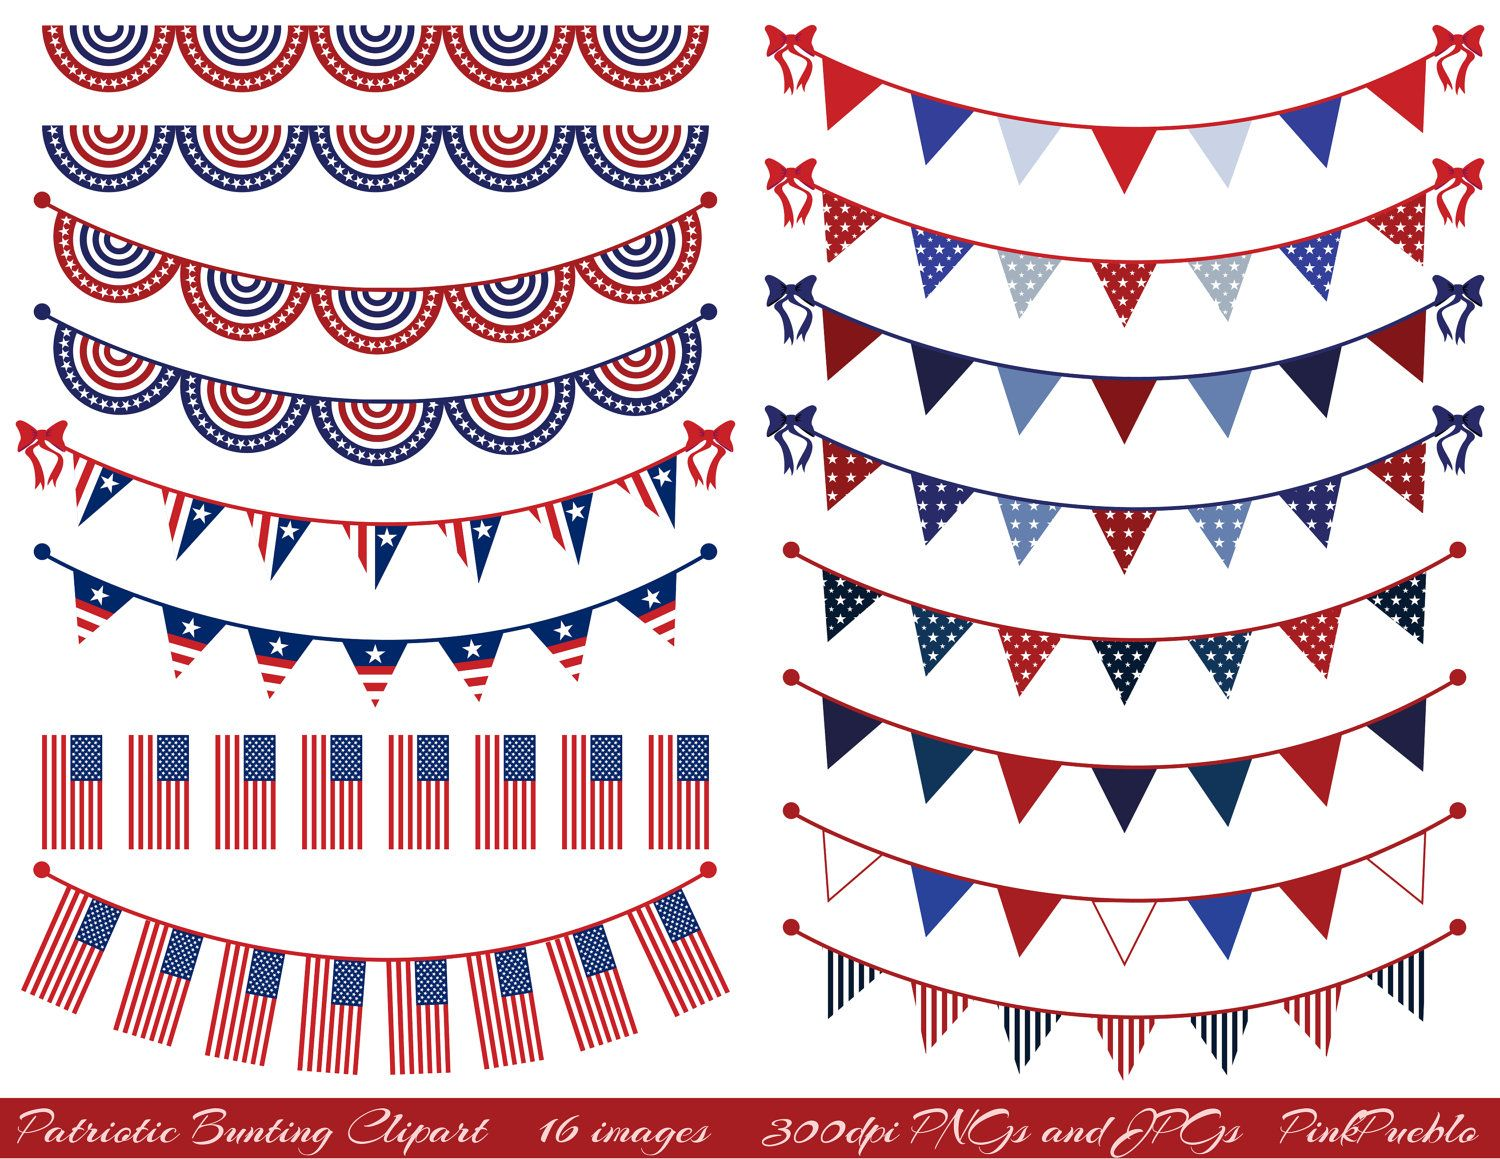 Old Fashioned Patriotic Bunting Png - Patriotic Bunting Clipart Clip Art, Fourth of July Flag Clipart ...